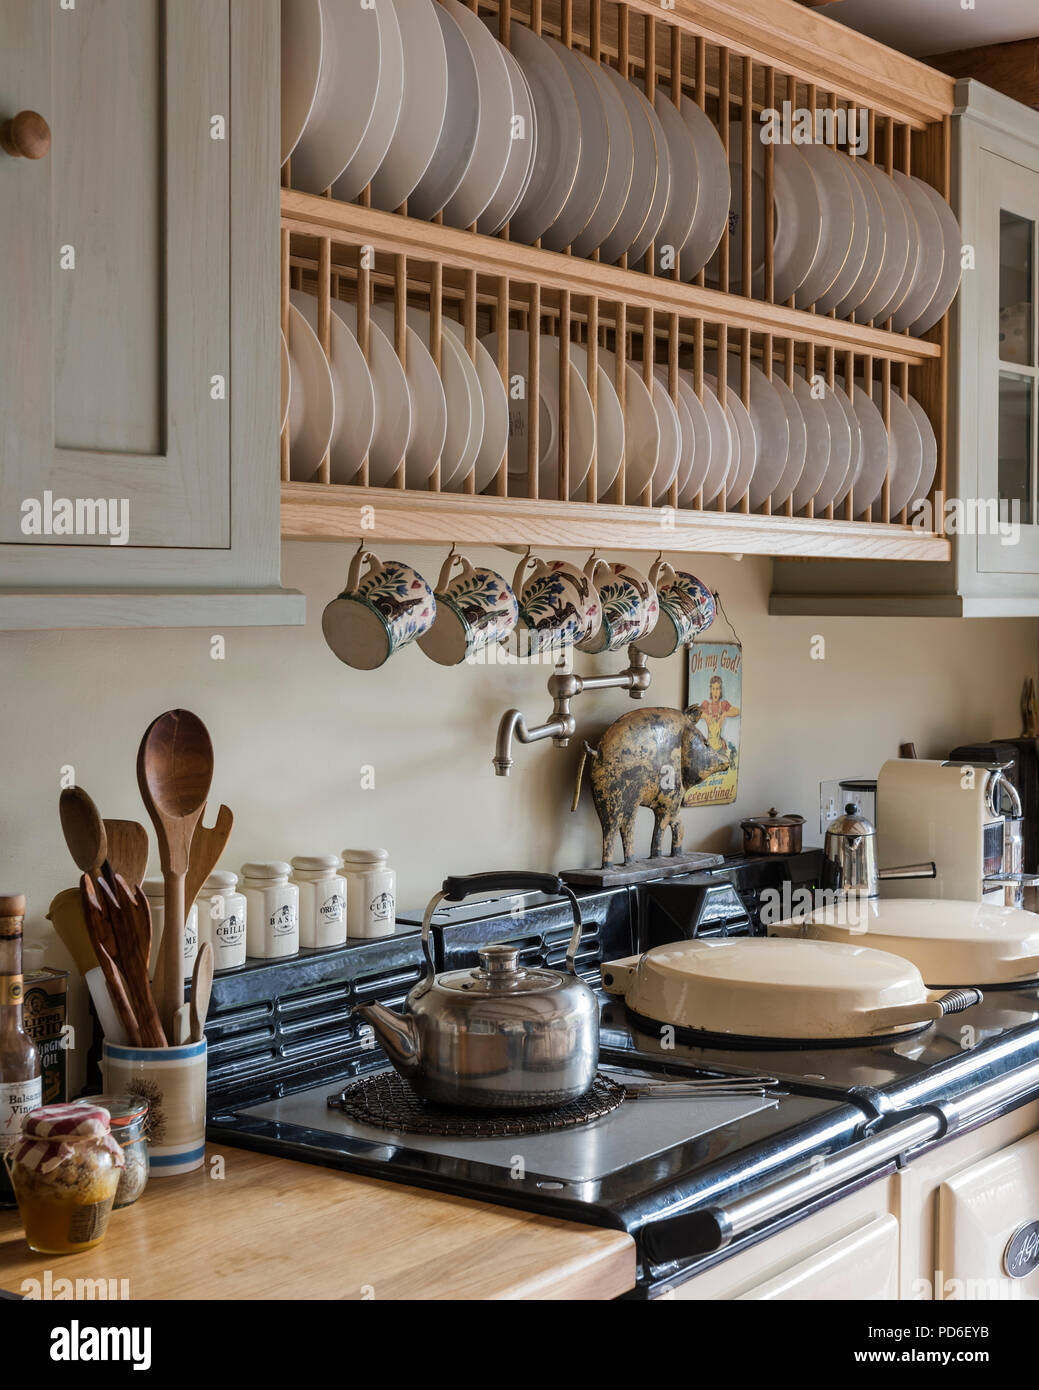 Wooden plate rack above AGA with kettle on hob - Stock Image